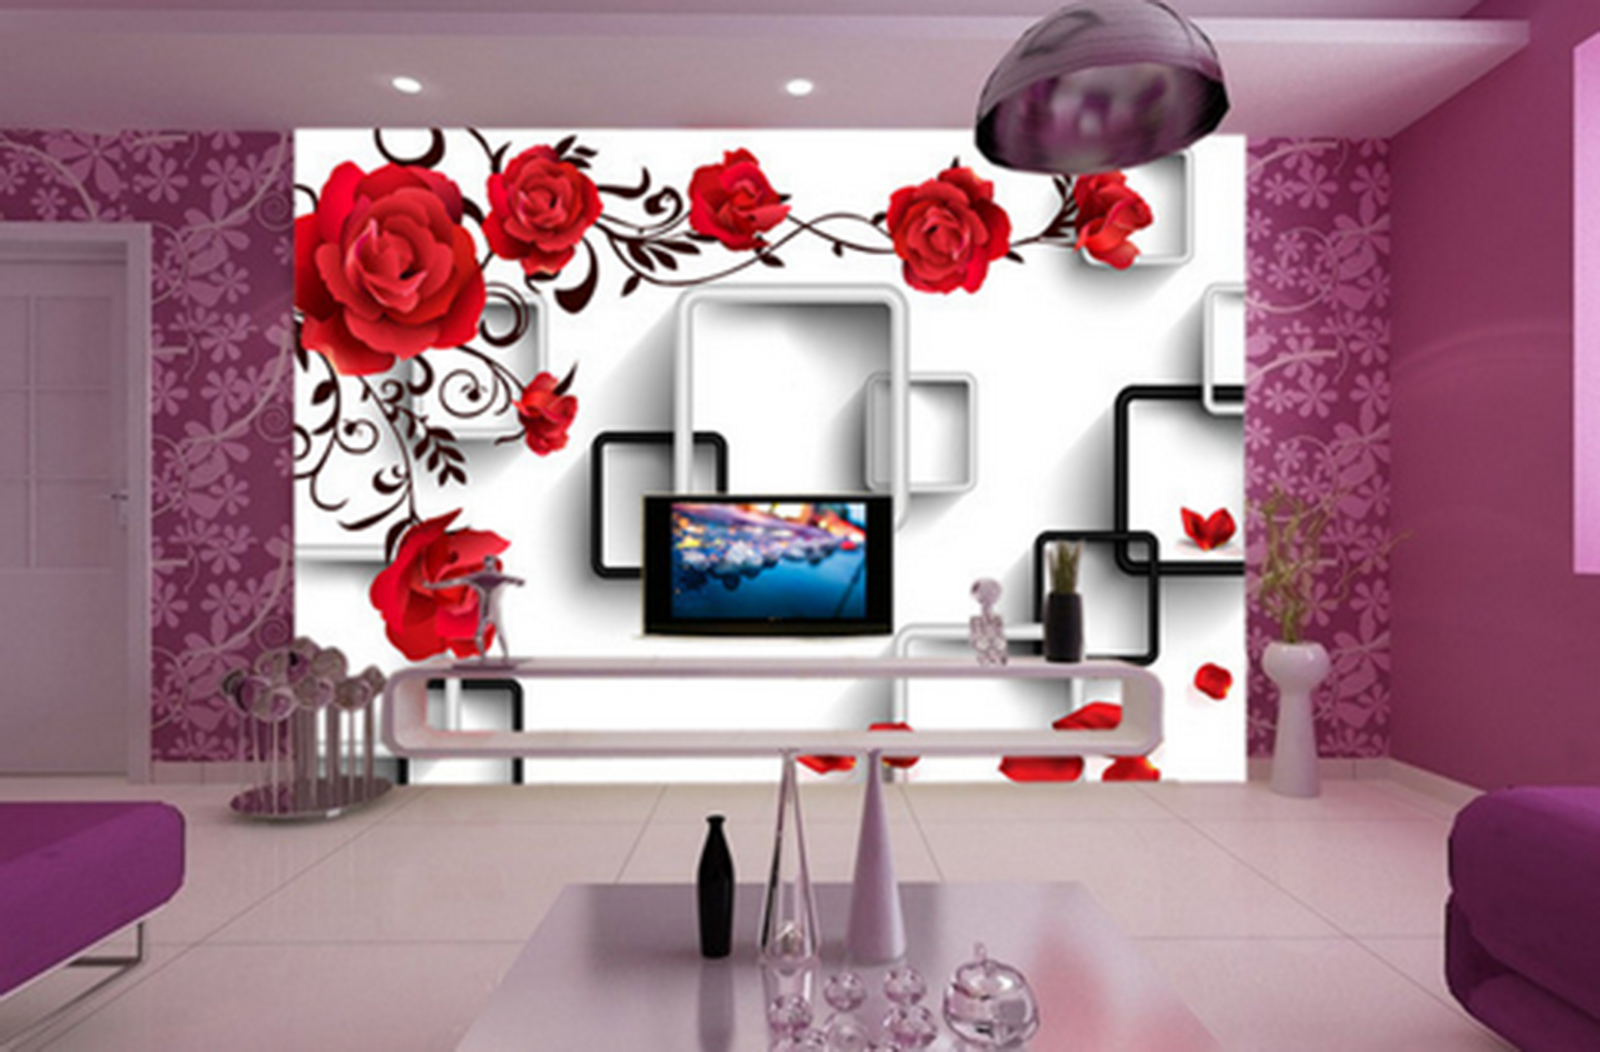 3D Flowers Rose ROT Vines 46 Paper Wall Print Wall Decal Wall Deco Indoor Murals